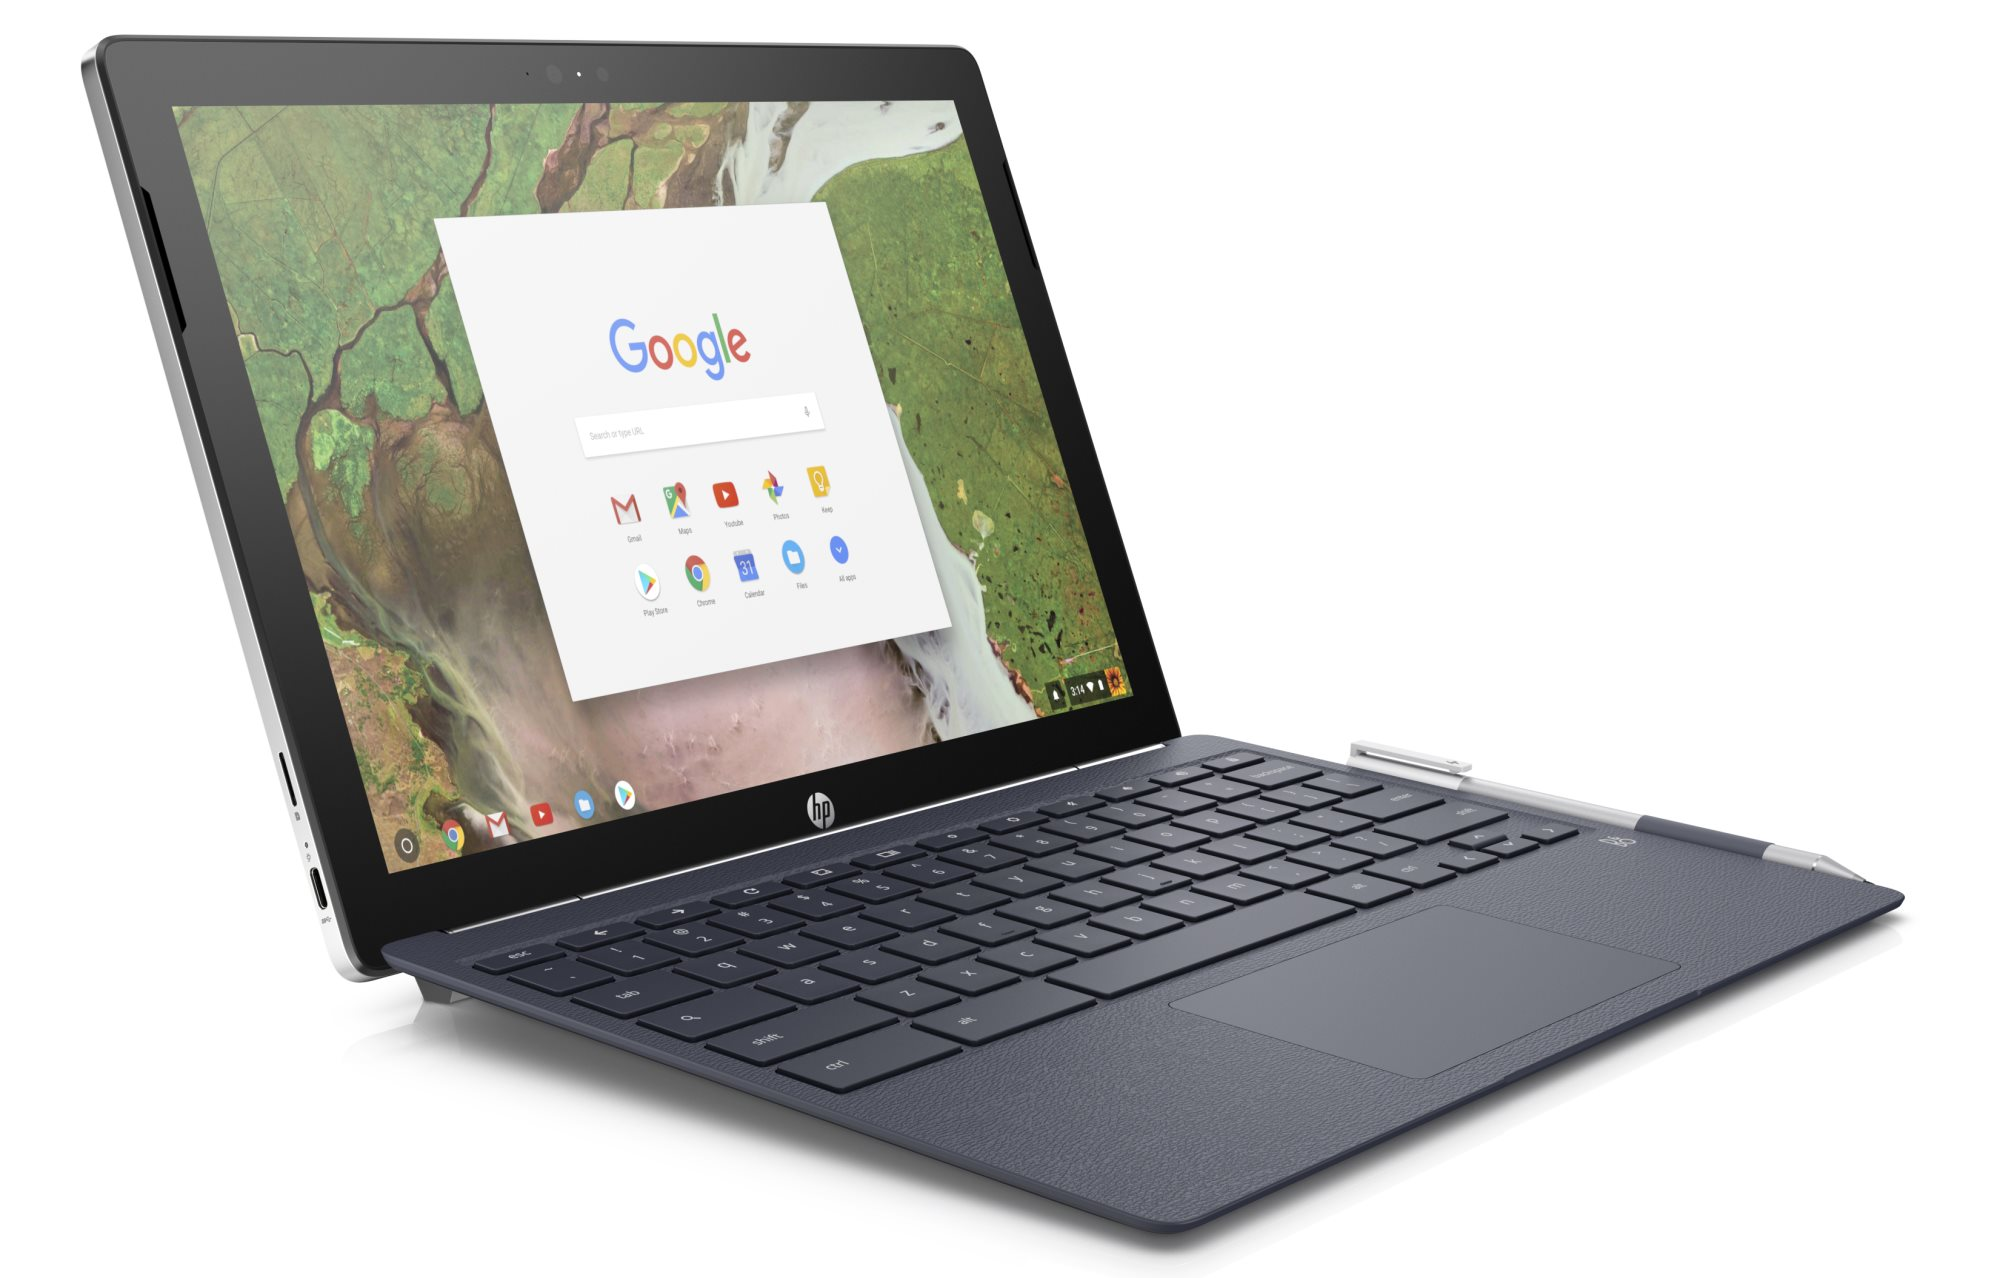 HP's first Chromebook detachable offers lightweight option for business travelers